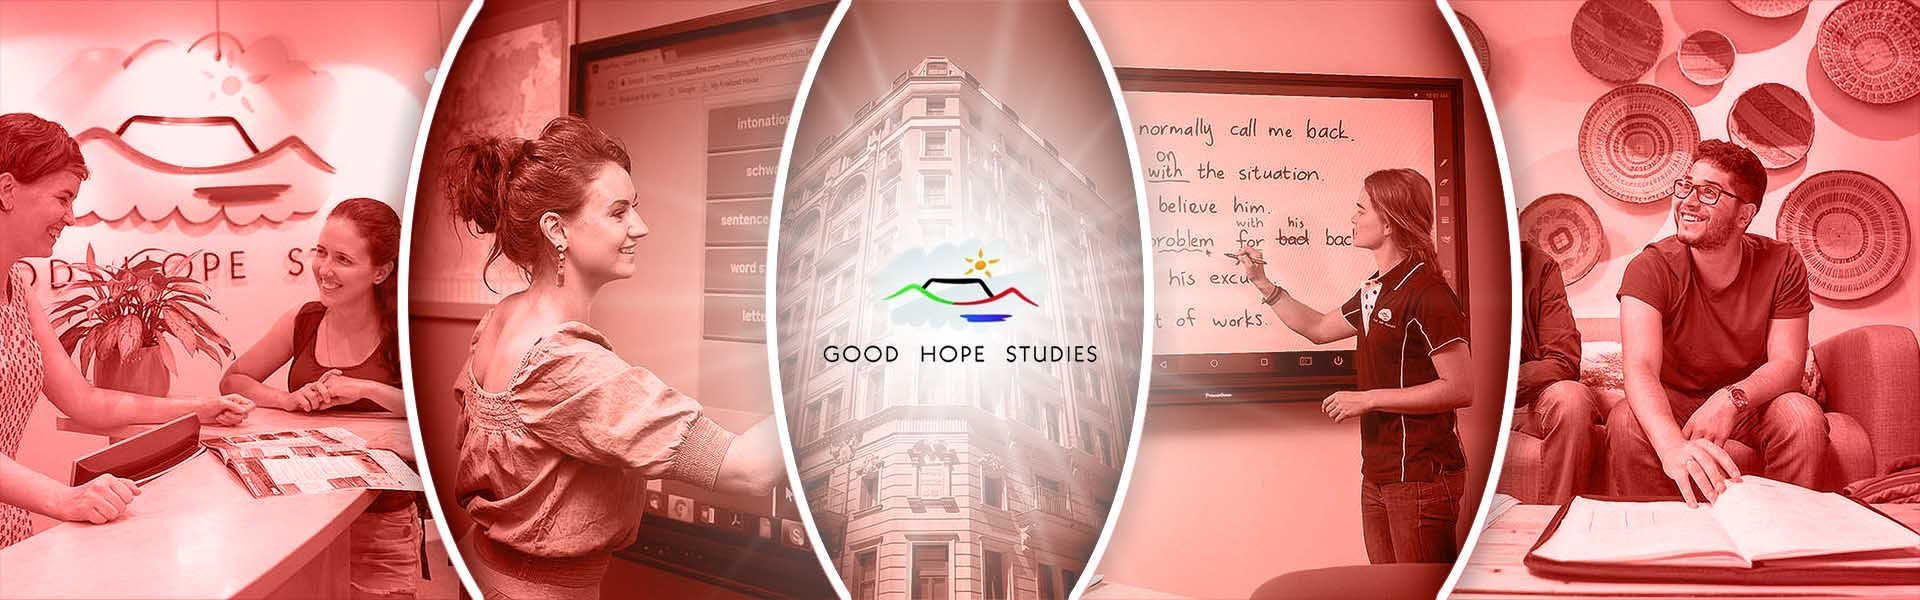 Good Hope Studies Cape Town Dil Okulu